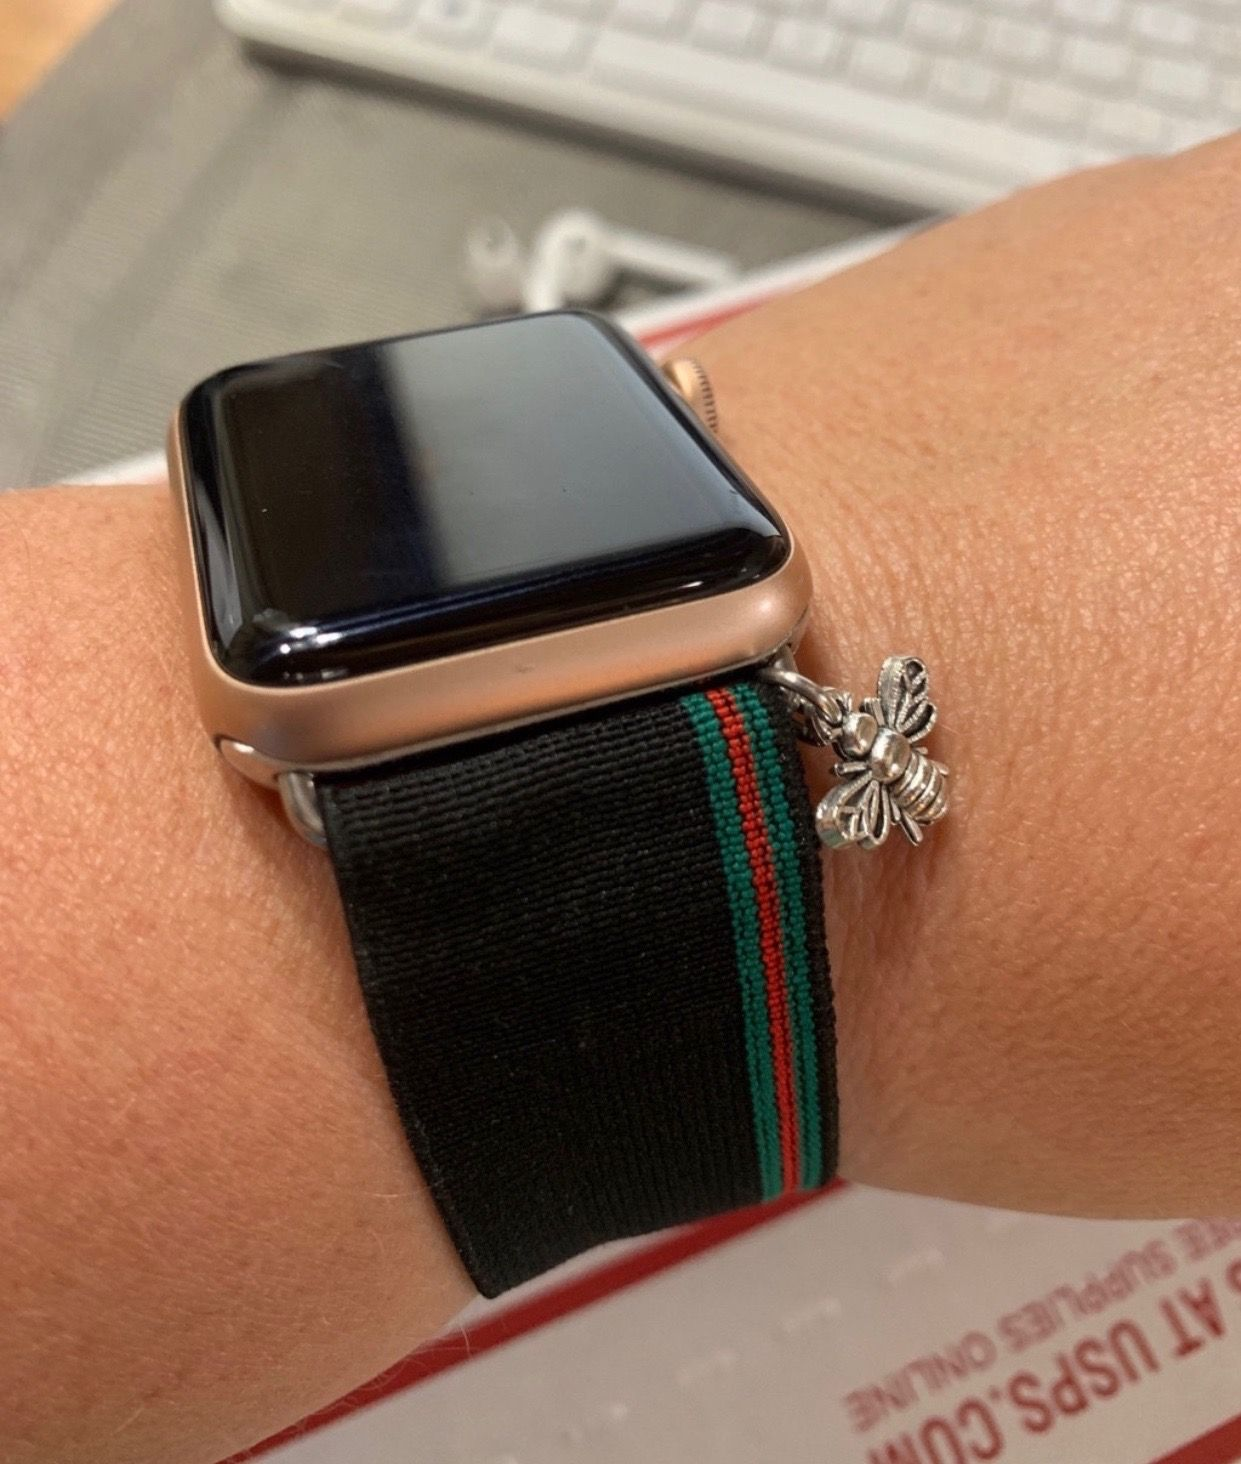 Pin by Taylor Miller on My style Apple watch bands